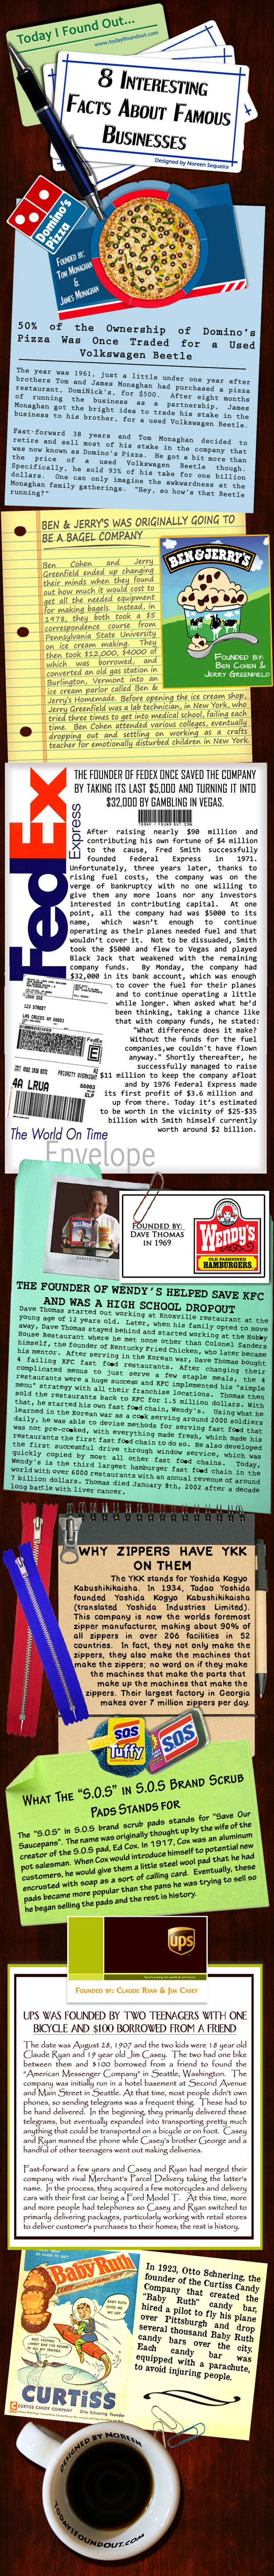 8 Things You Didn't Know About Famous Businesses [Infographic]